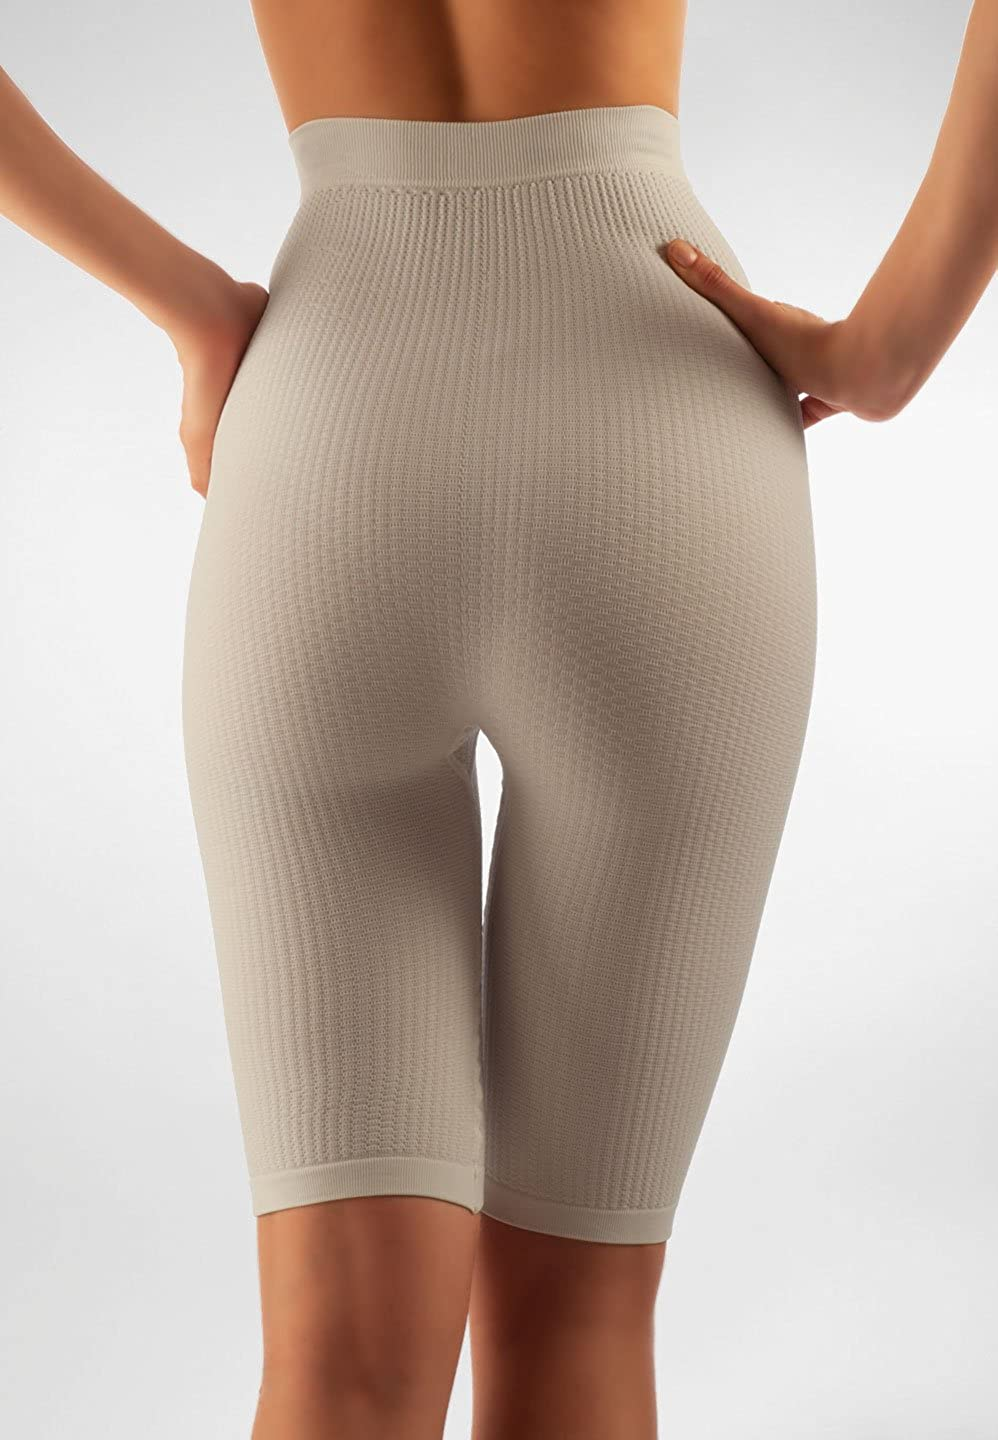 59ab5ad3b6e92b FarmaCell 413 Women's high-Waisted Anti-Cellulite micromassage Shorts with  Milk Fiber at Amazon Women's Clothing store: